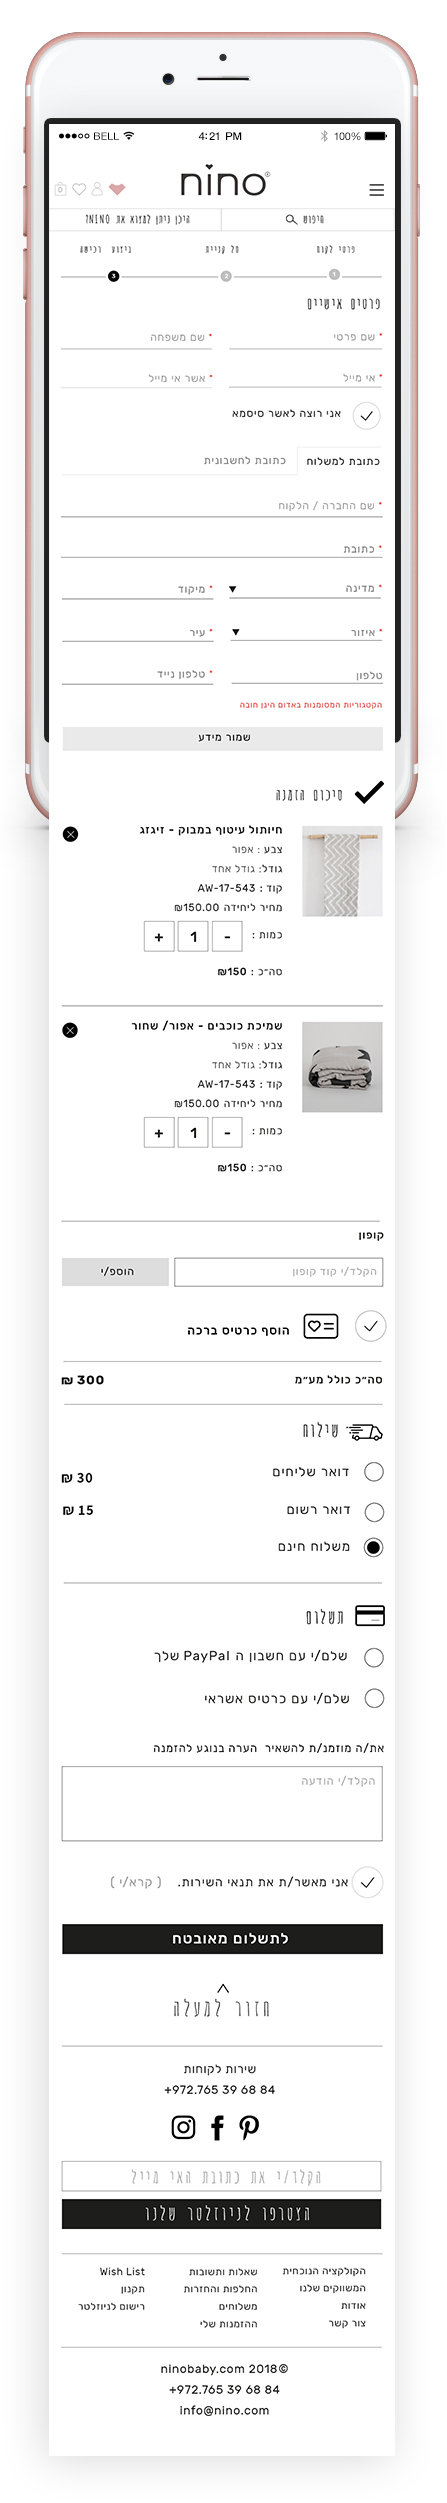 NINO-mobile-open-purchase page.jpg